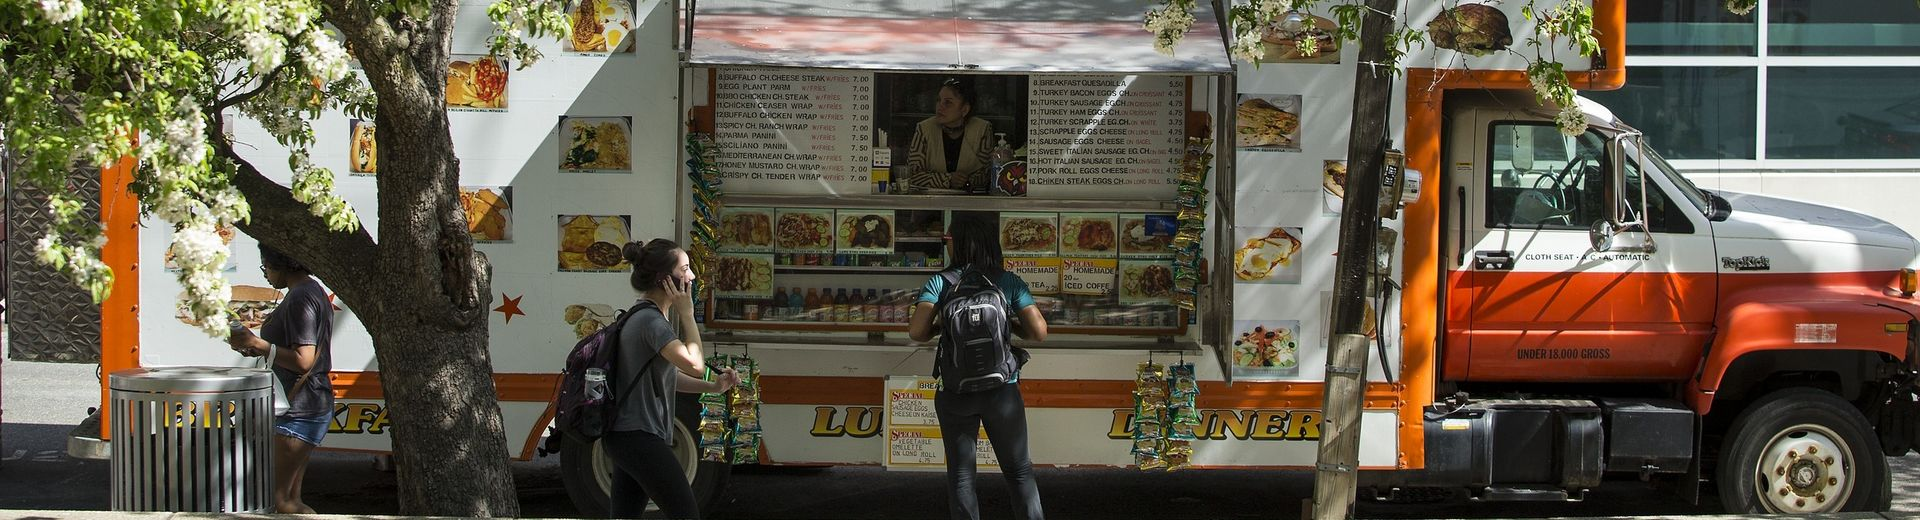 Students congregate around a food truck on Main Campus.